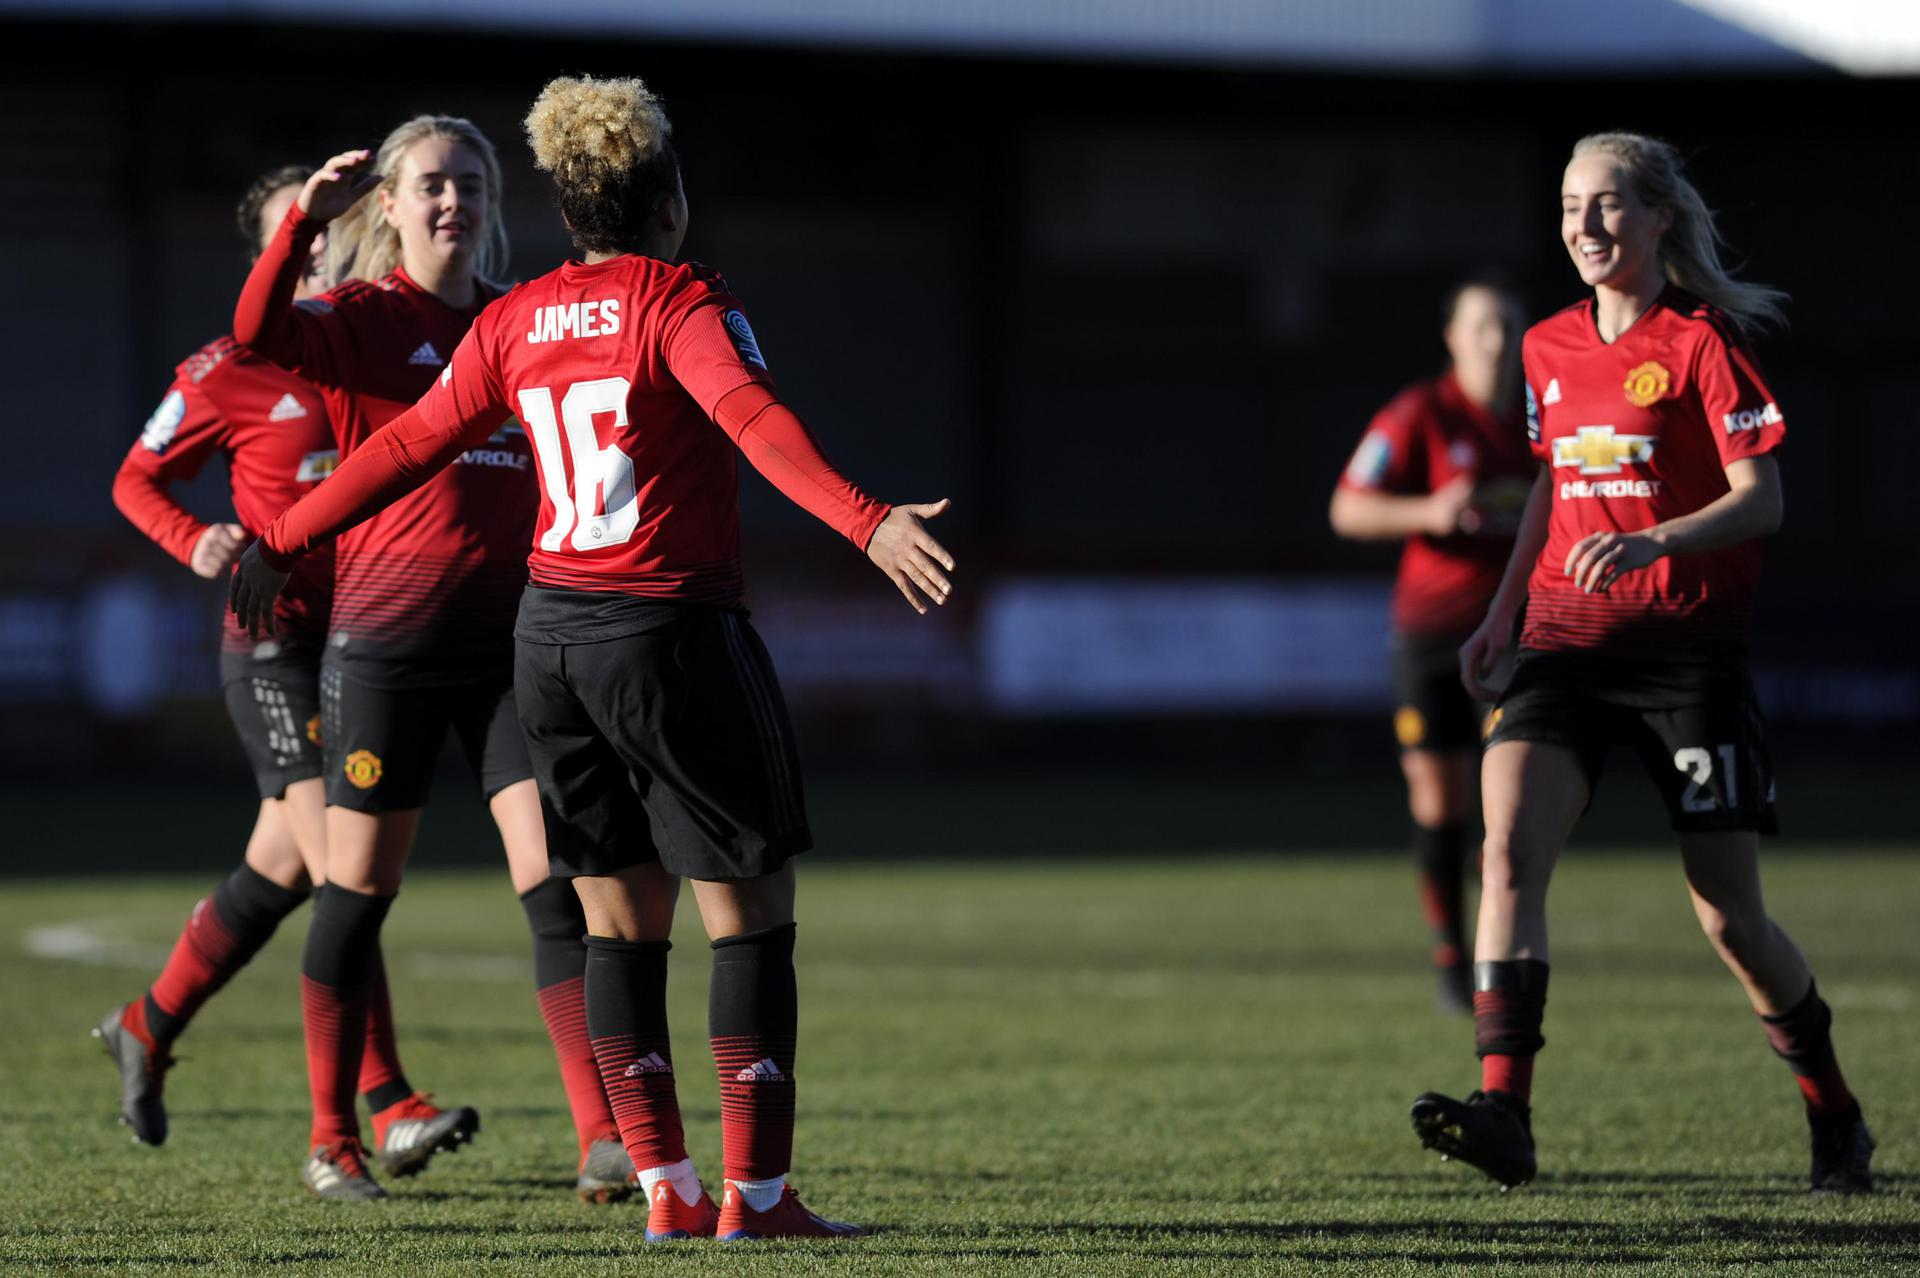 Lauren James celebrates one of her two goals against Brighton in the Women's FA Cup